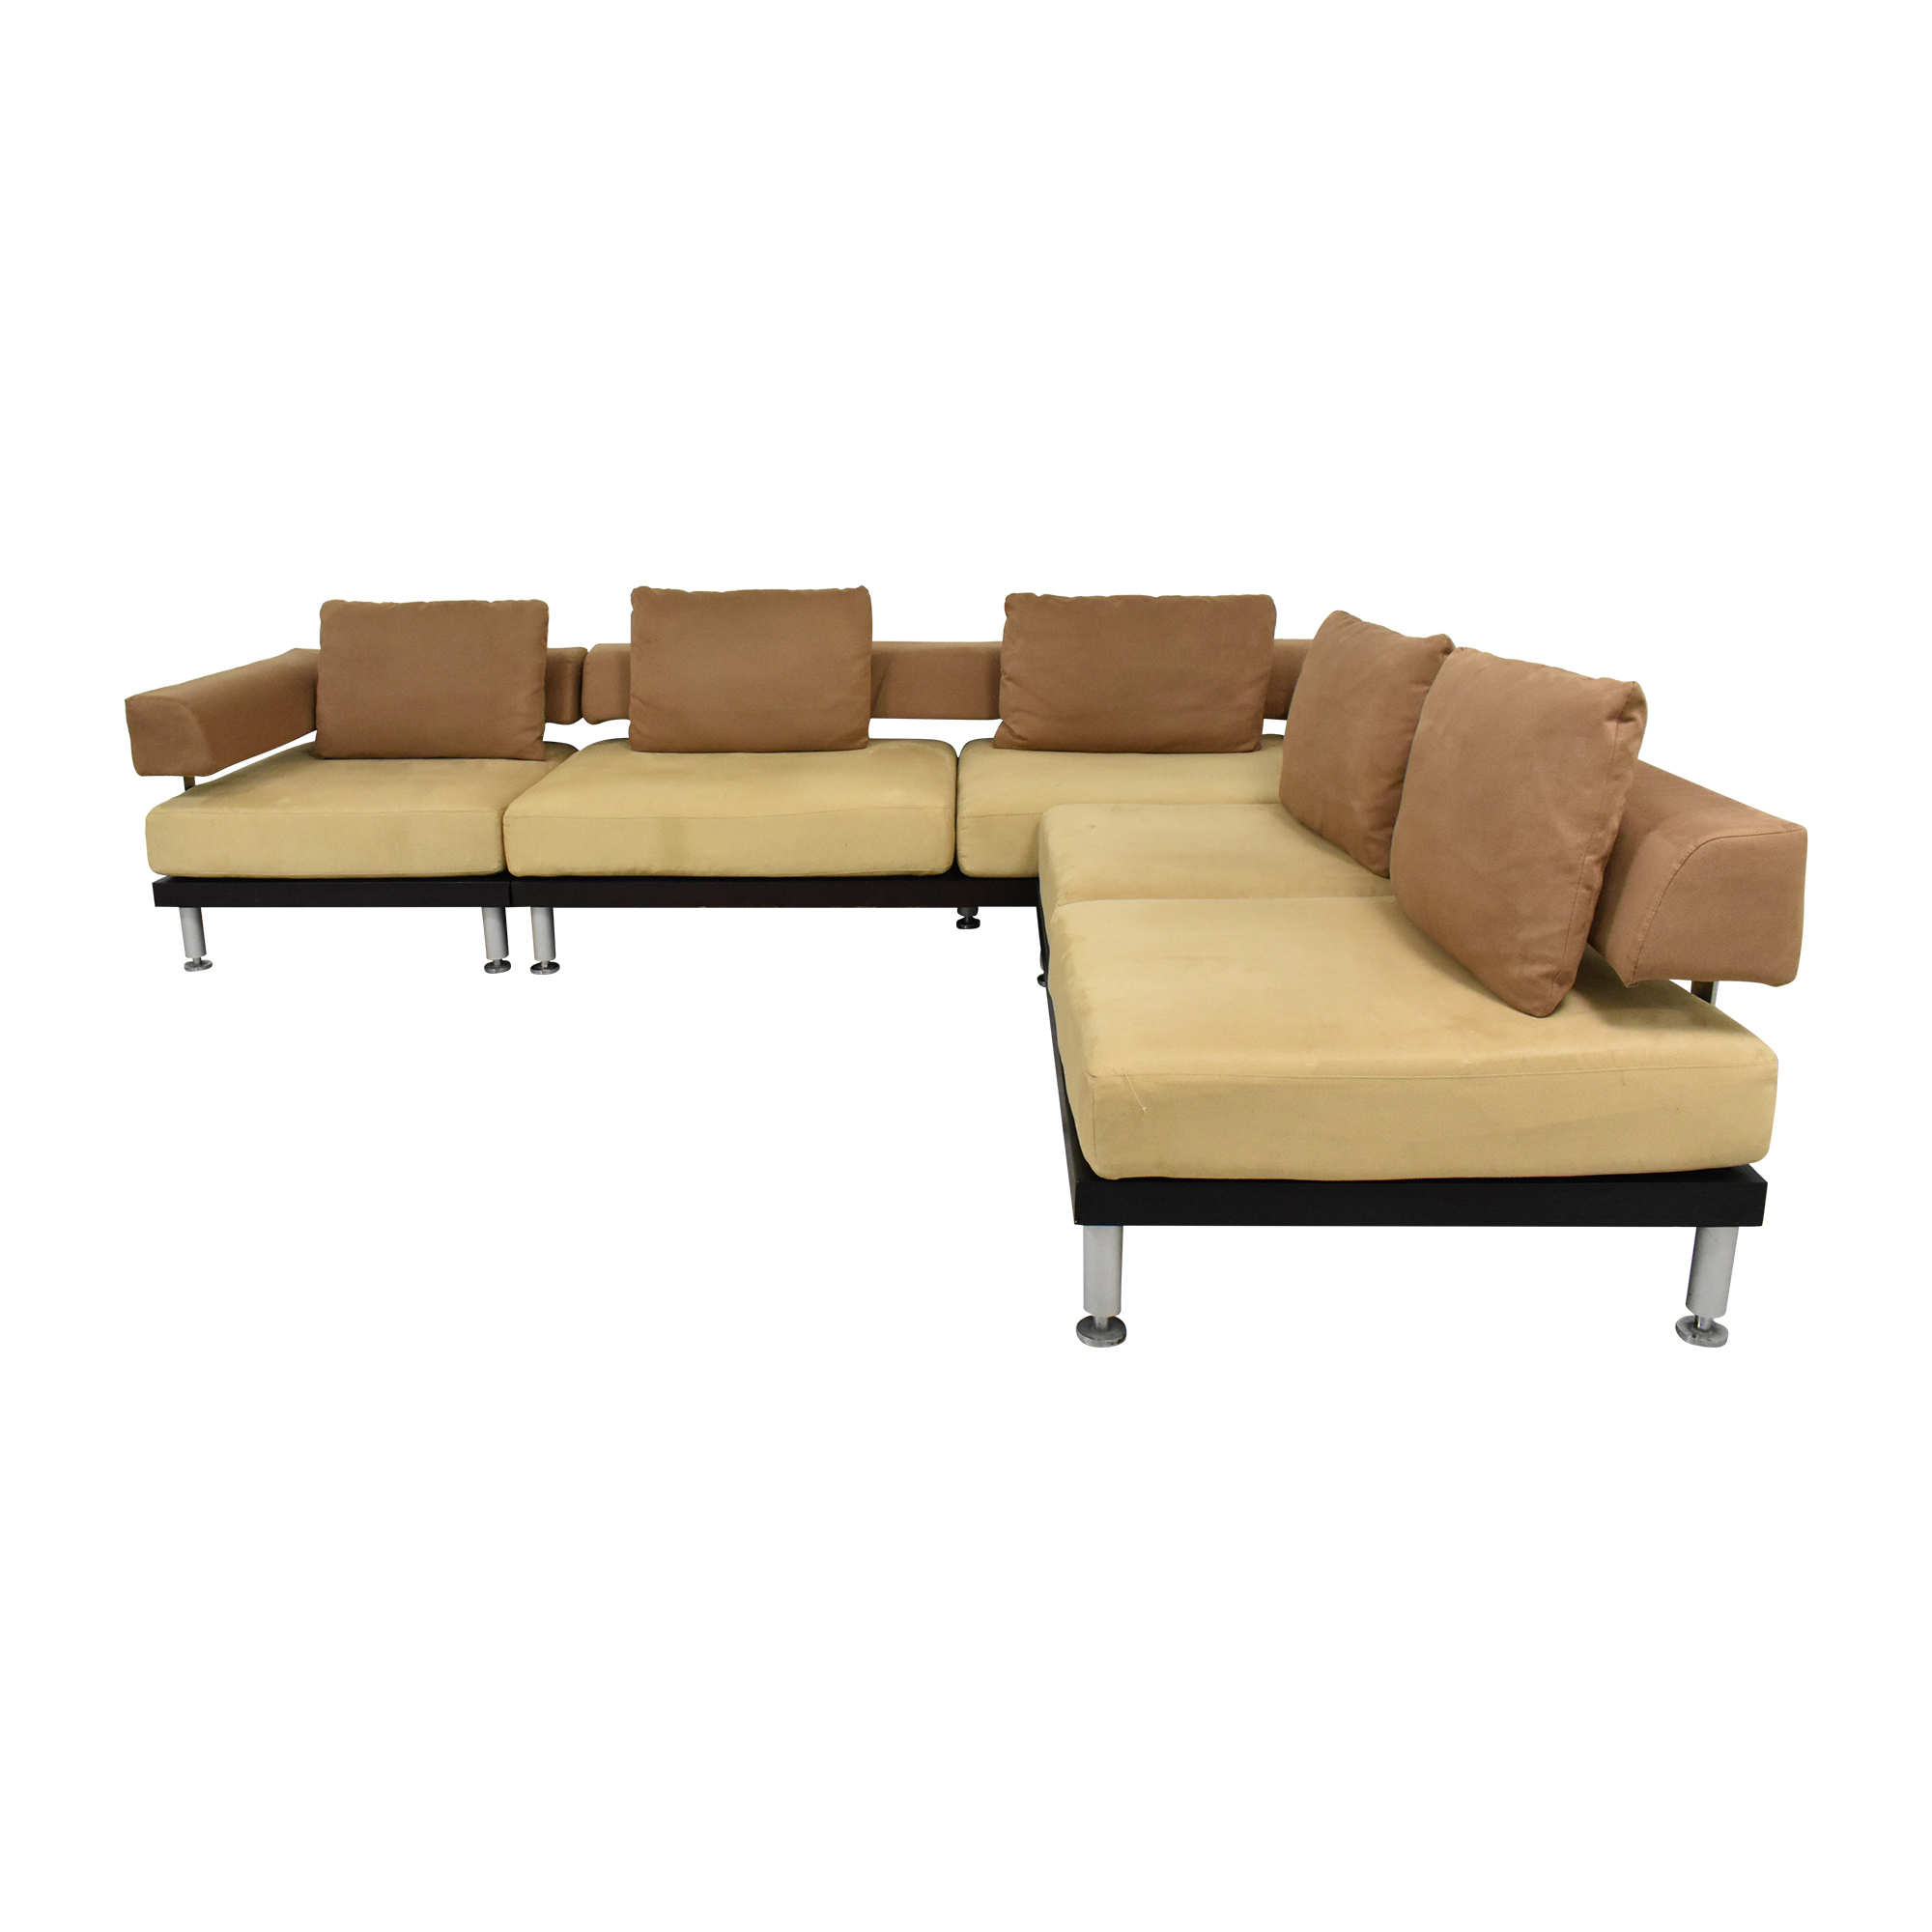 buy  Modern L Shaped Sectional Sofa online